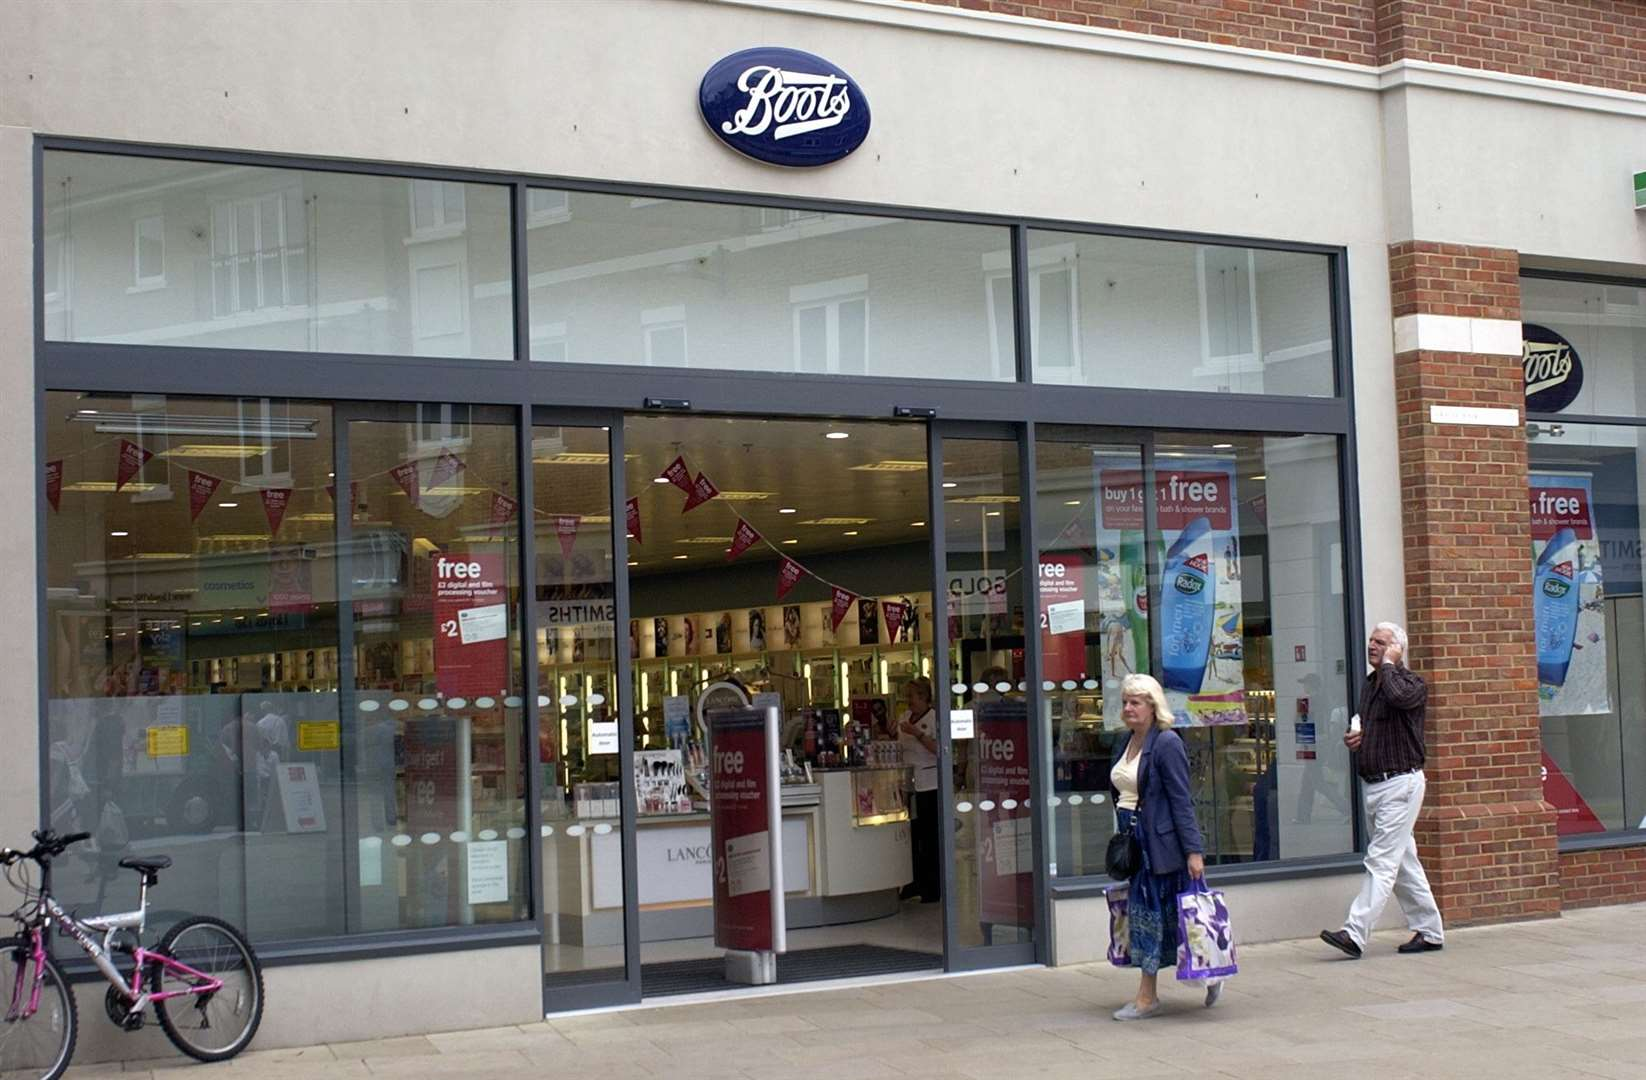 Boots in Canterbury's Whitefriars. Locations of stores to close have yet to be announced